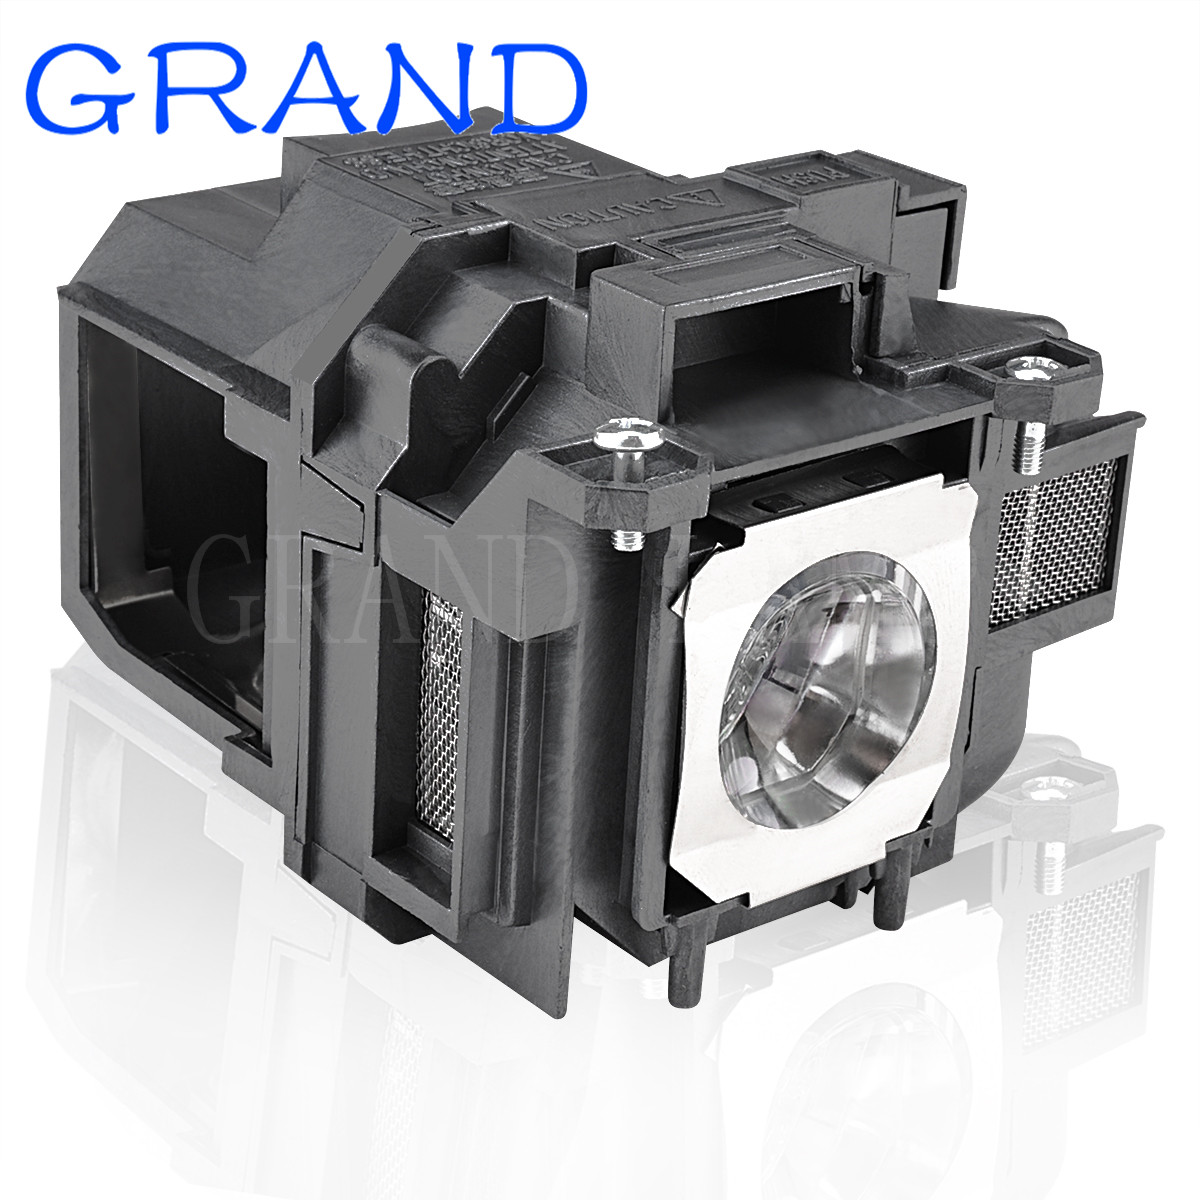 Replacement Projector Lamp Bulb ELPLP87 V13H010L87 For CB-530 CB-535W CB-536Wi EB-C745XN CB-575W PowerLite 520, 525W, 530